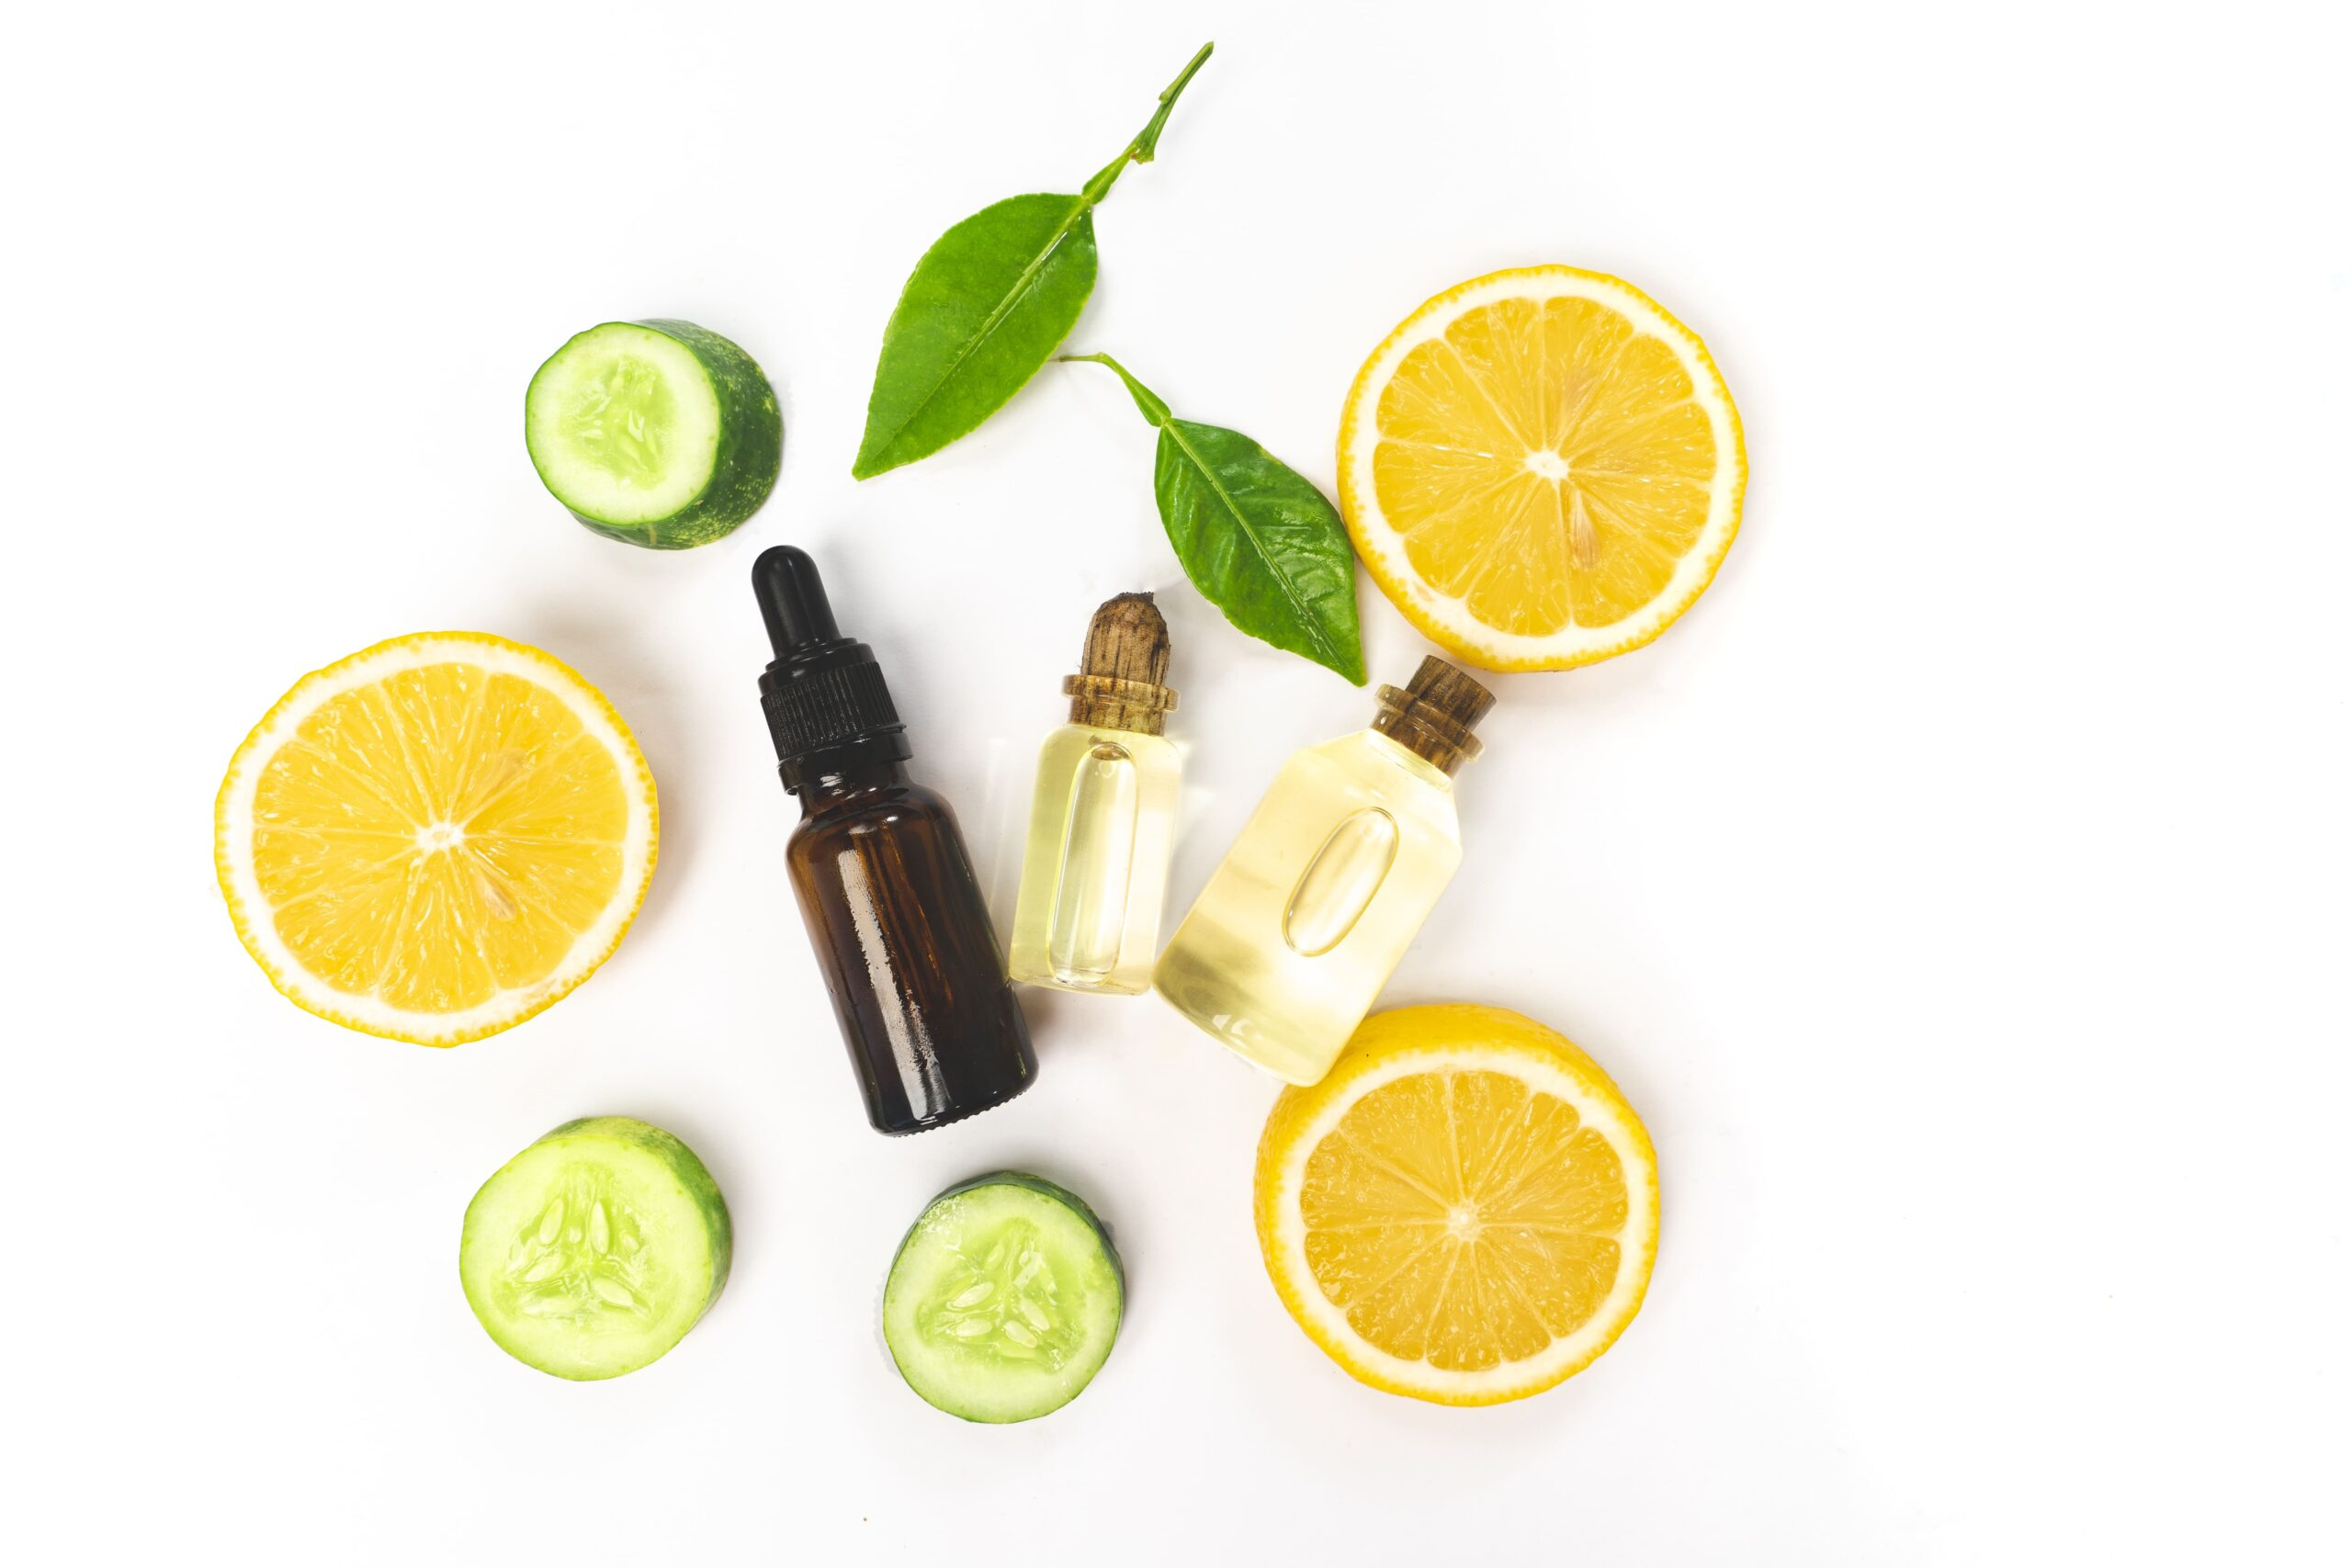 essential fruit oil on bottle with lemon fruits with leaf on white background 1 1 scaled